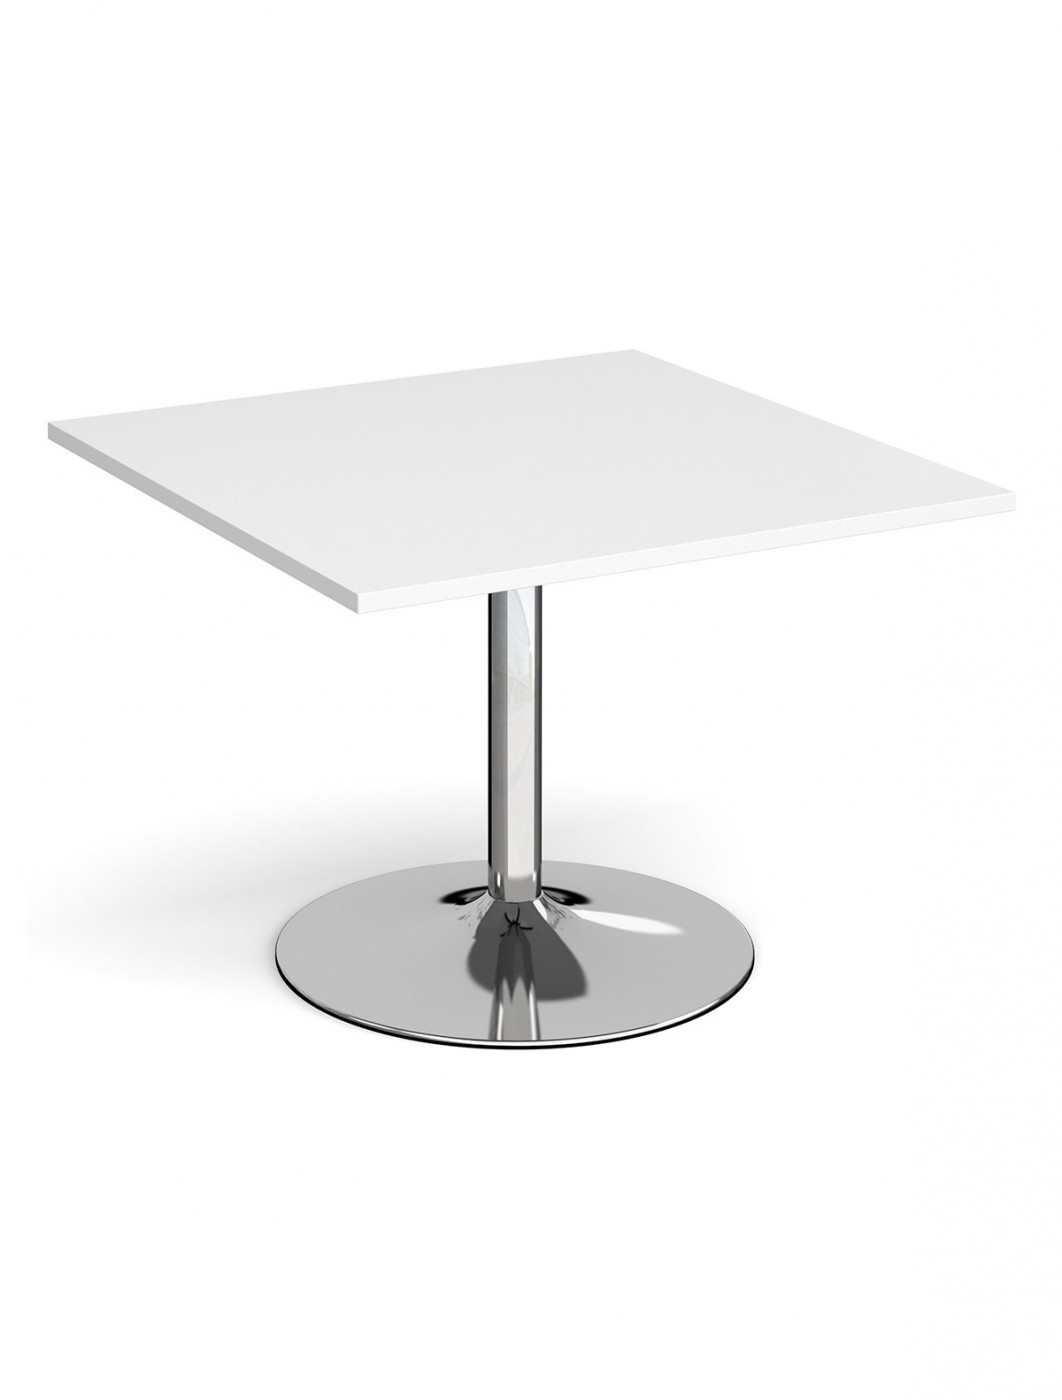 Dams Square Extension Table with Chrome Trumpet Base TB10-C